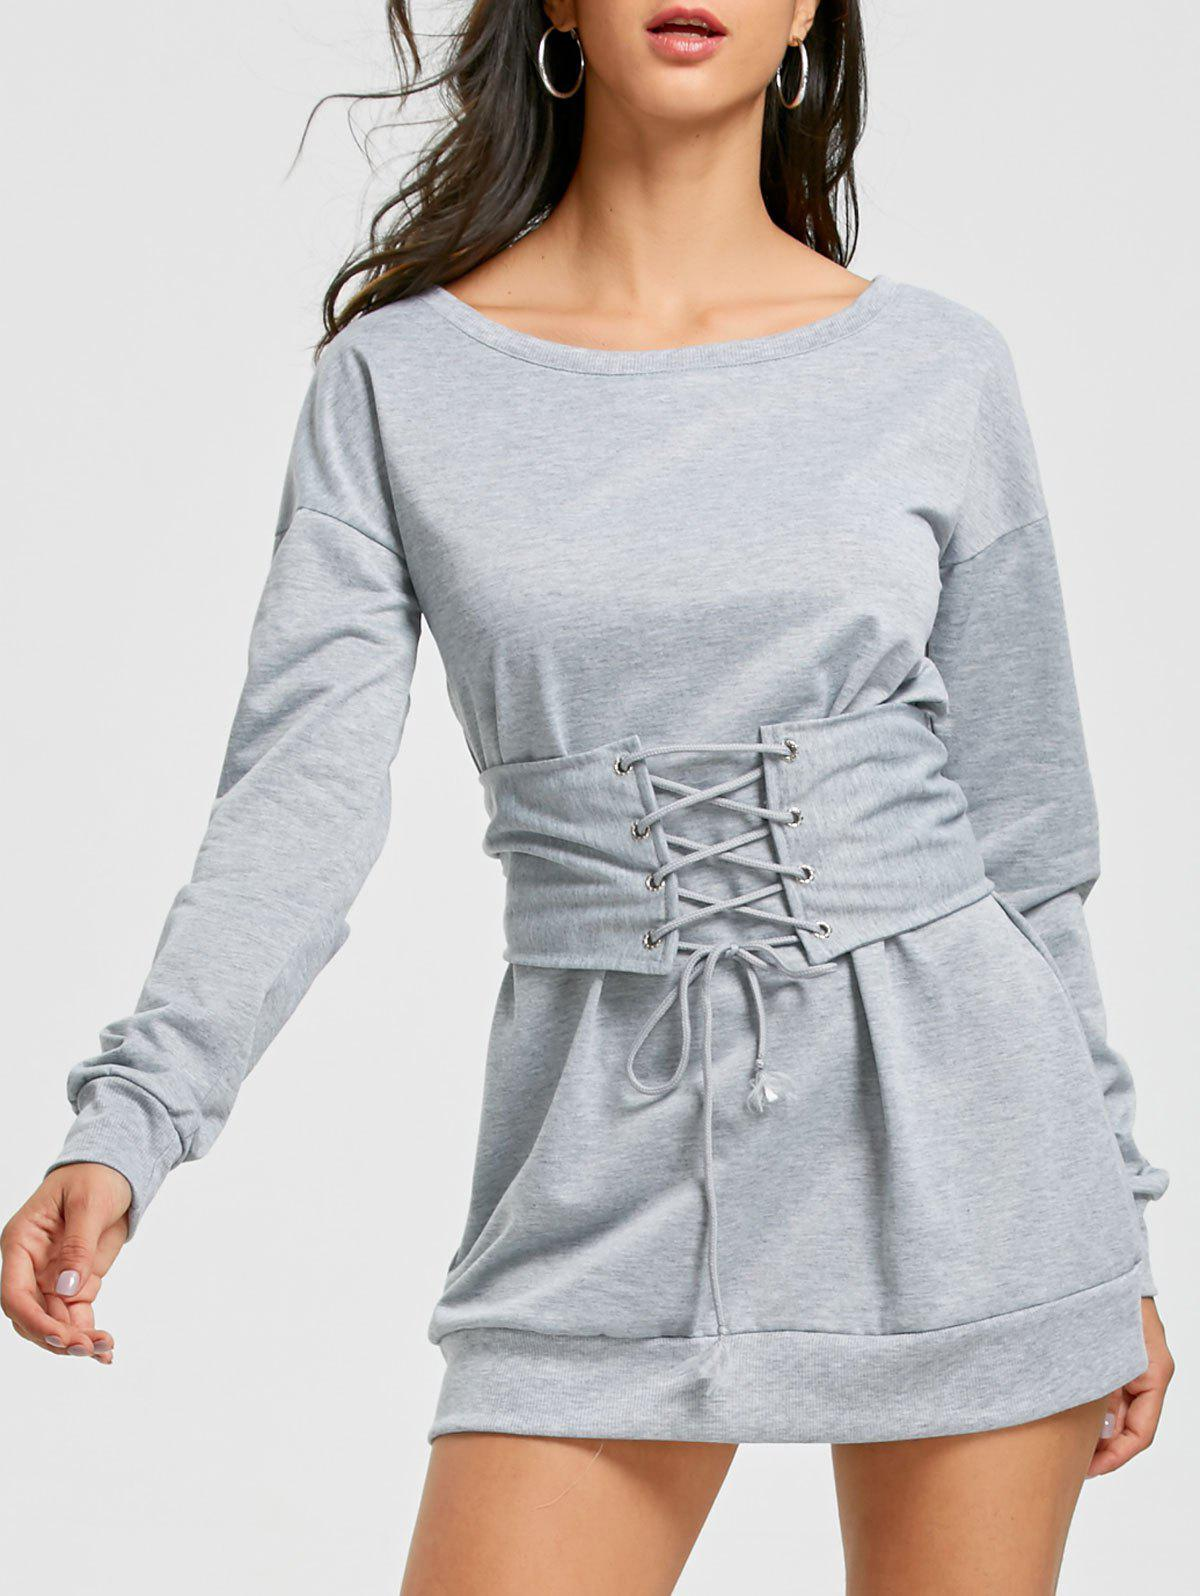 Lace Up Corset Waist Long Sleeve Mini DressWOMEN<br><br>Size: S; Color: GRAY; Style: Casual; Material: Cotton,Polyester; Silhouette: Shift; Dresses Length: Mini; Neckline: Round Collar; Sleeve Length: Long Sleeves; Pattern Type: Solid; With Belt: Yes; Season: Fall,Spring; Weight: 0.3600kg; Package Contents: 1 x Dress   1 x Belt;